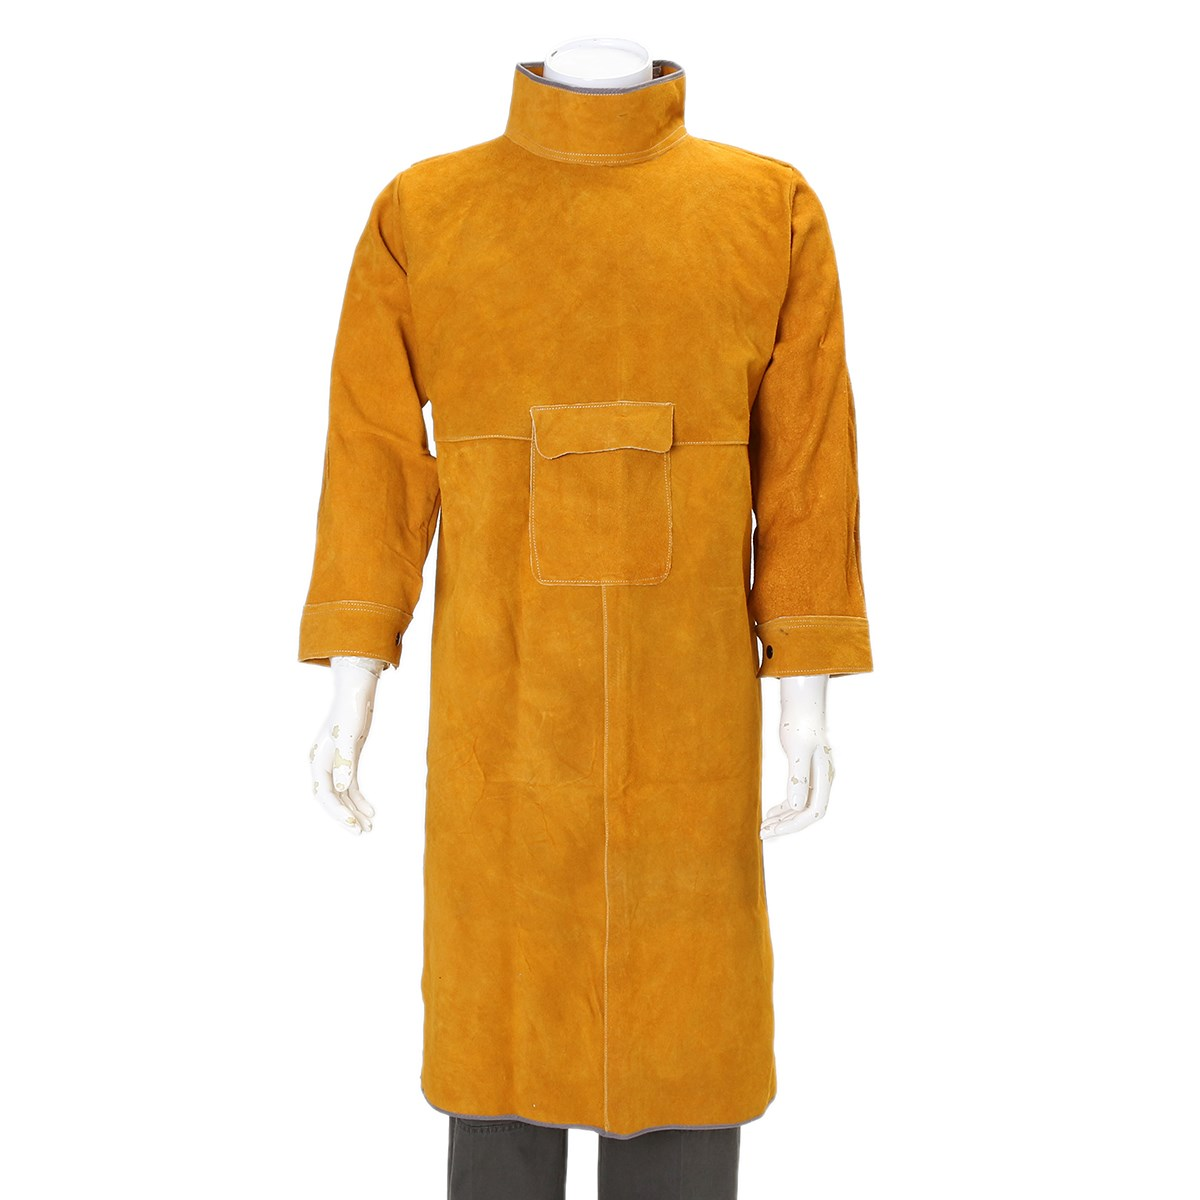 Durable Leather Welding Long Coat Apron Protective Clothing Apparel Suit Welder Workplace Safety Clothing leather welding long coat apron protective clothing apparel suit welder workplace safety clothing